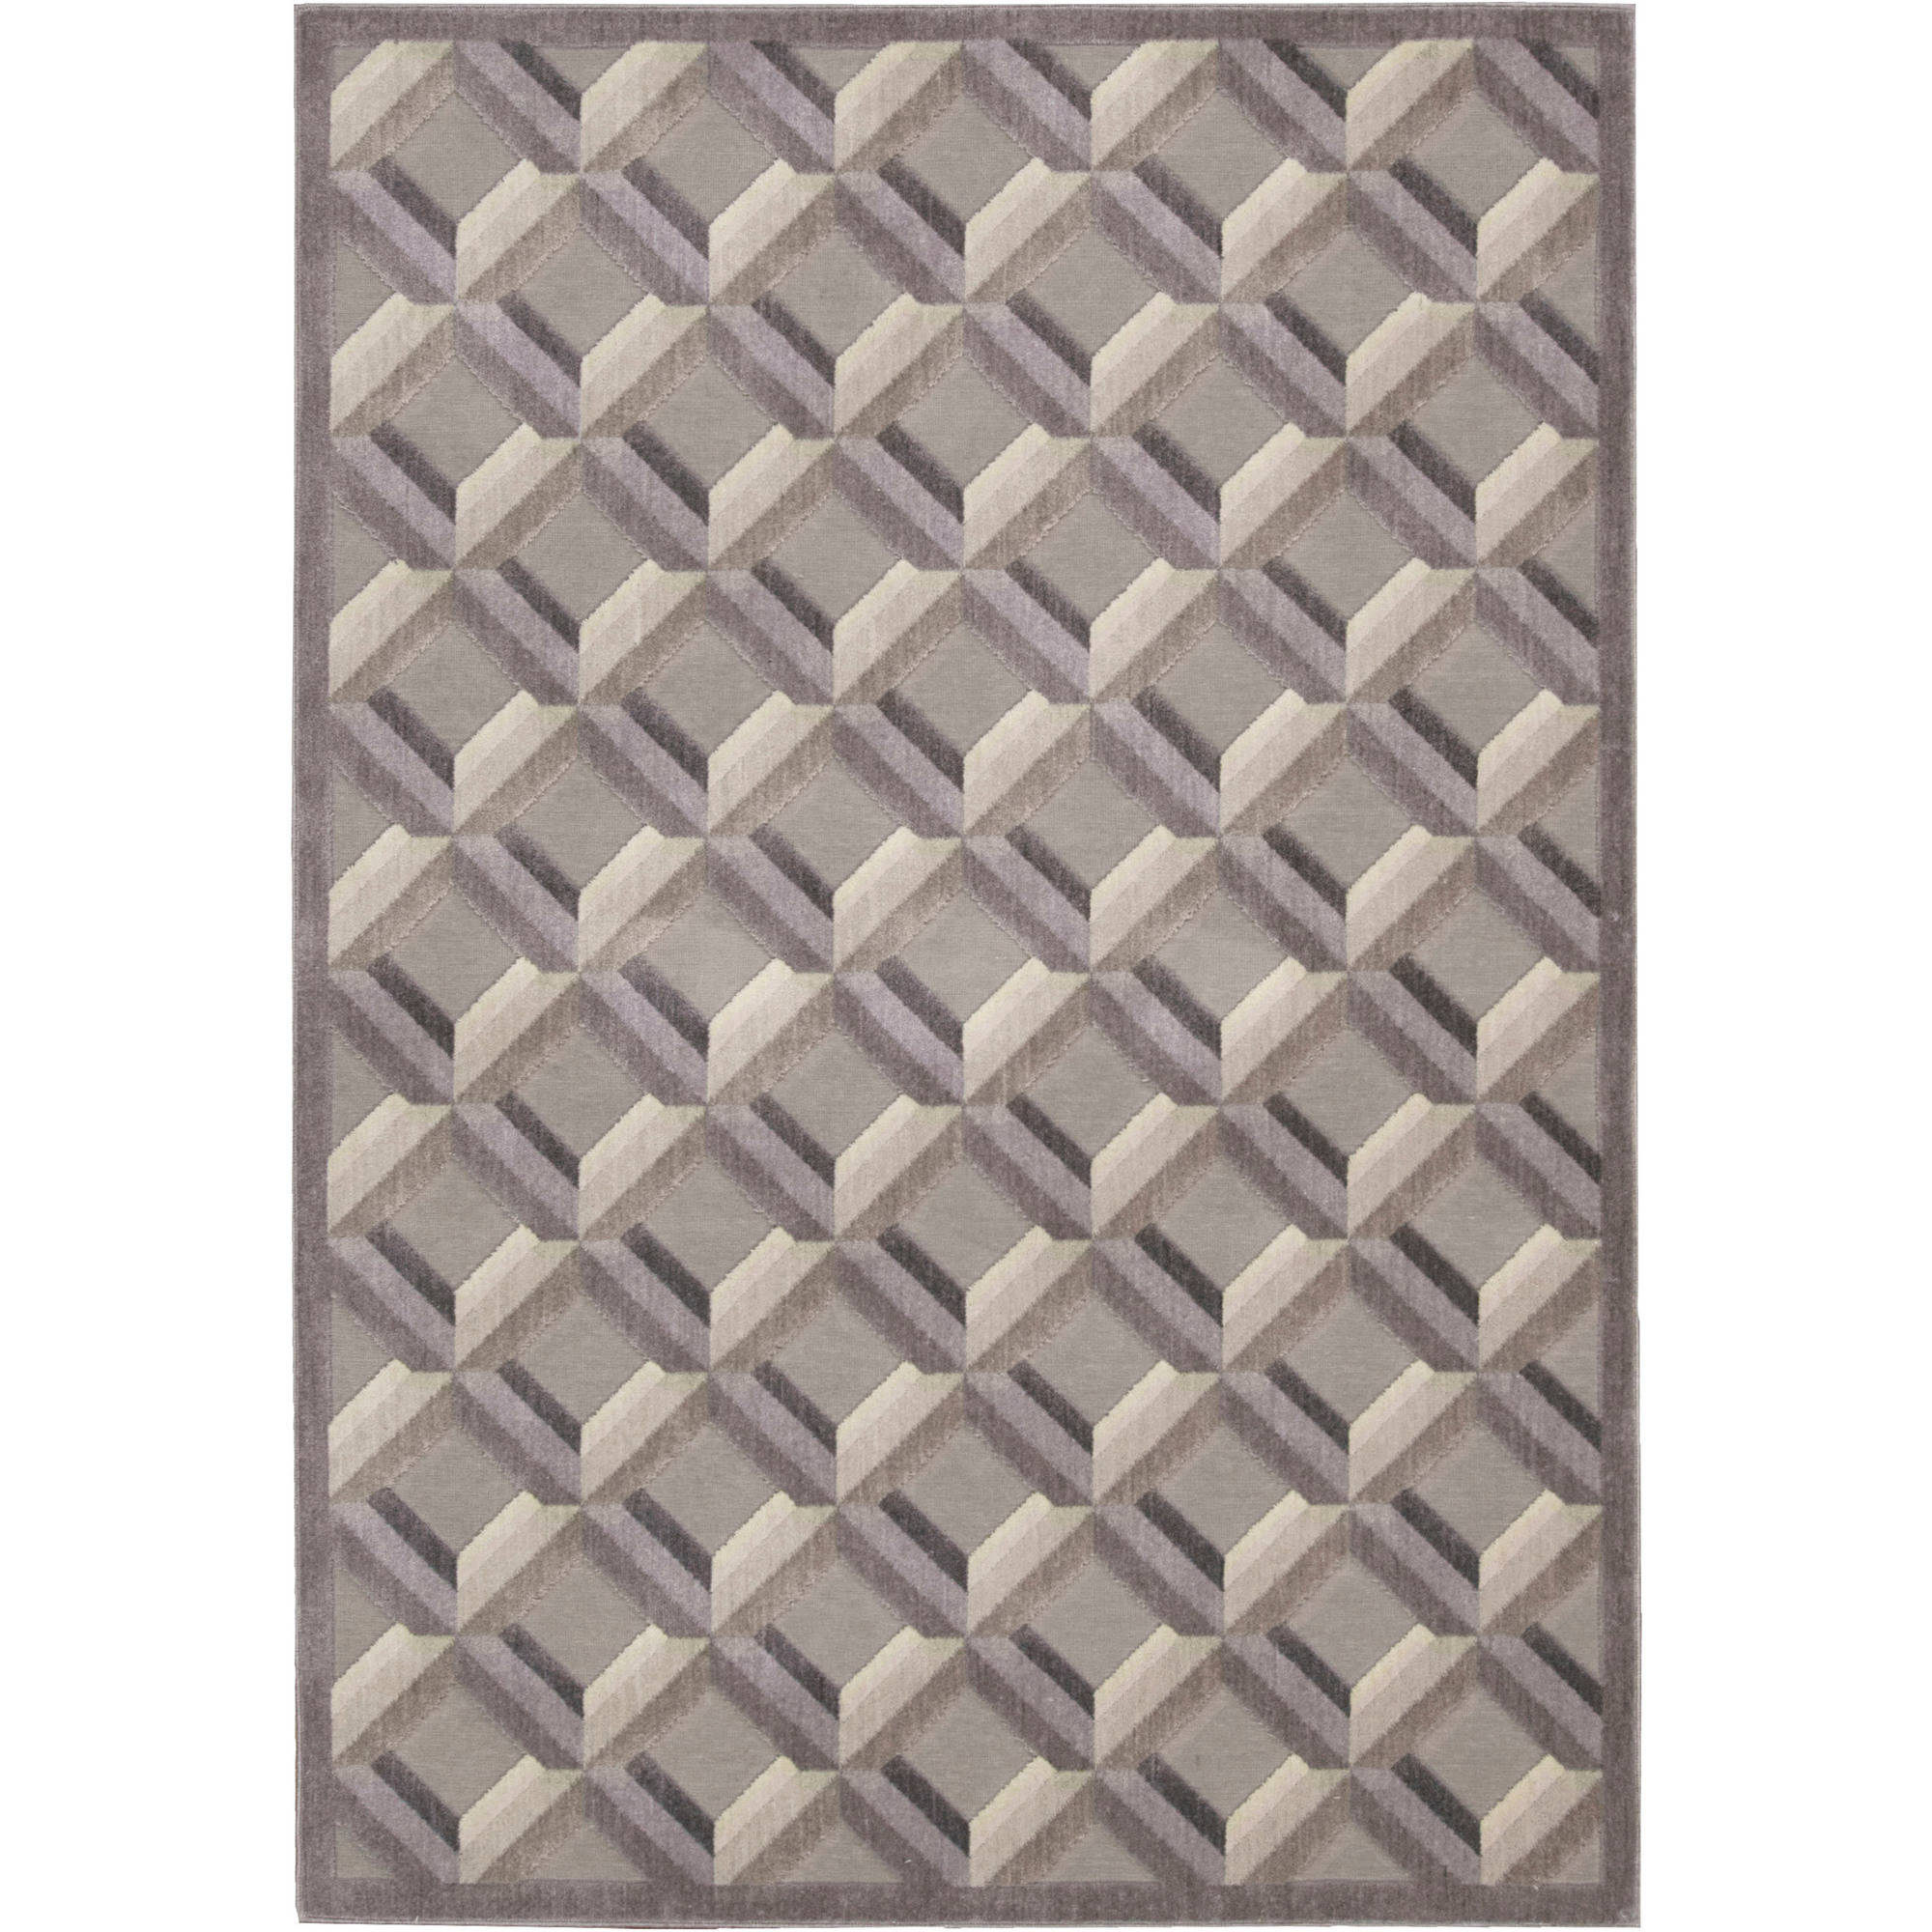 Nourison Graphic Illusions Shaded Squares Rug, Stone